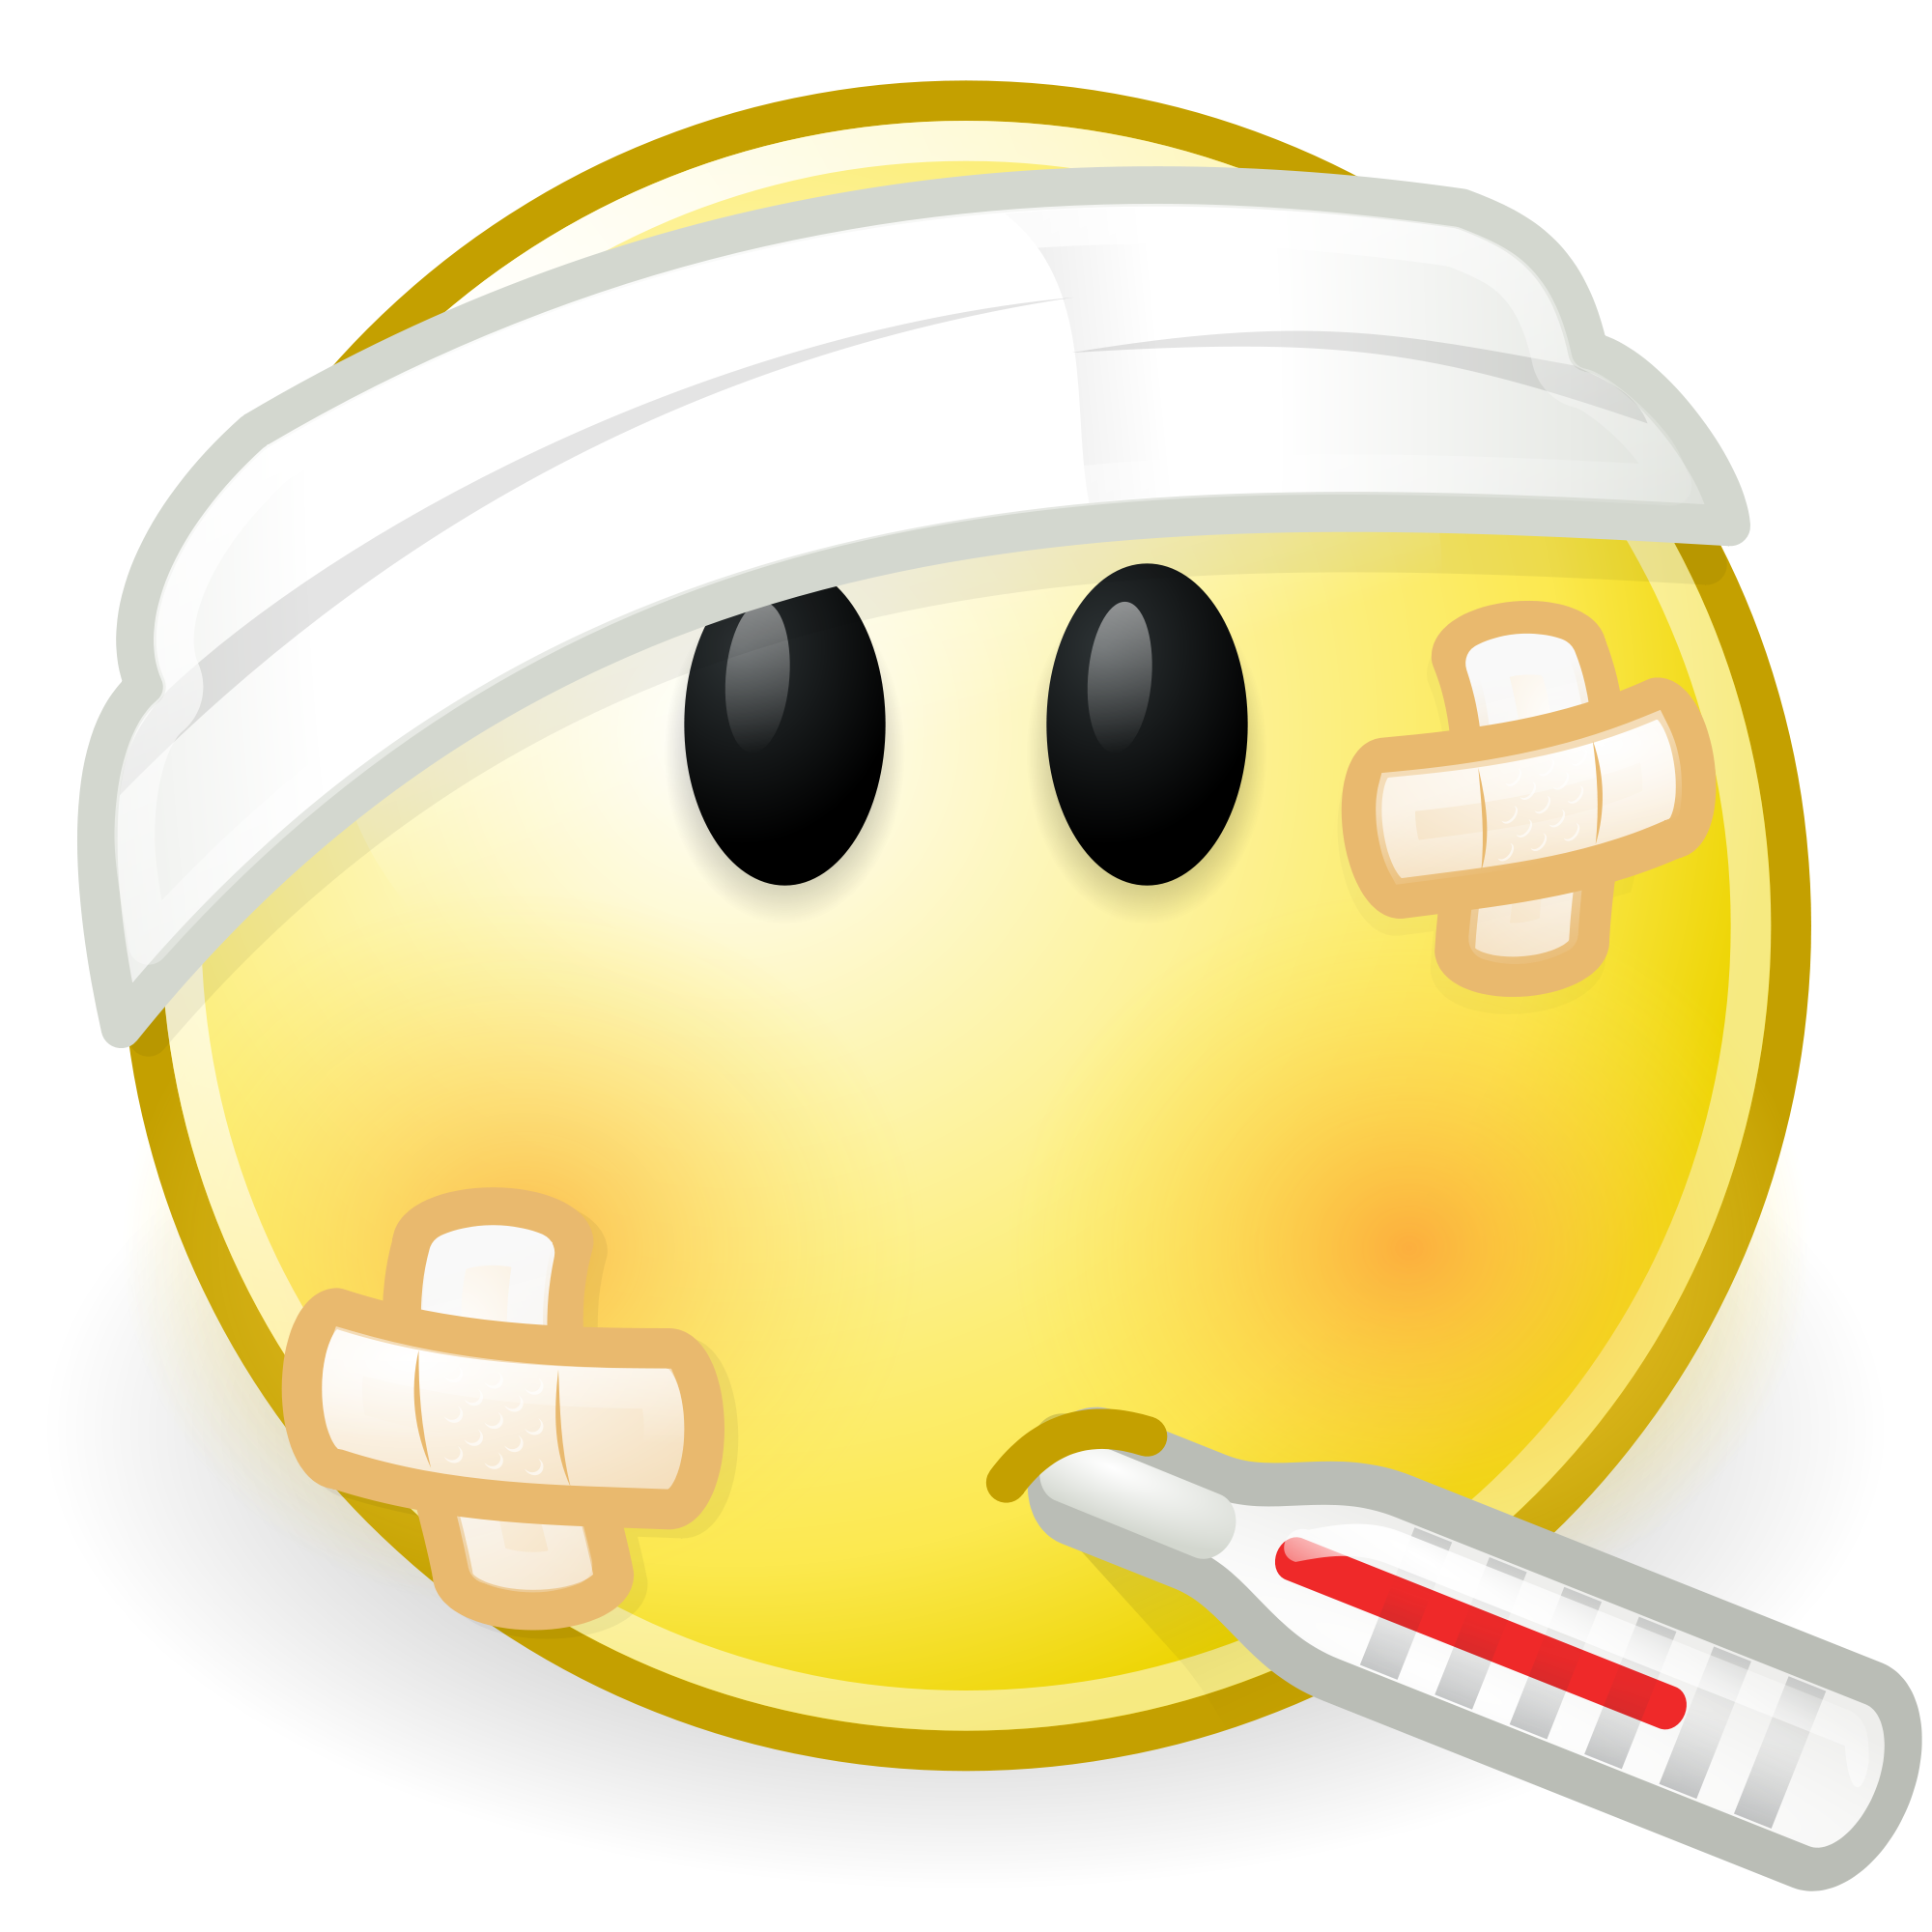 2000px-Gnome-face-sick.svg